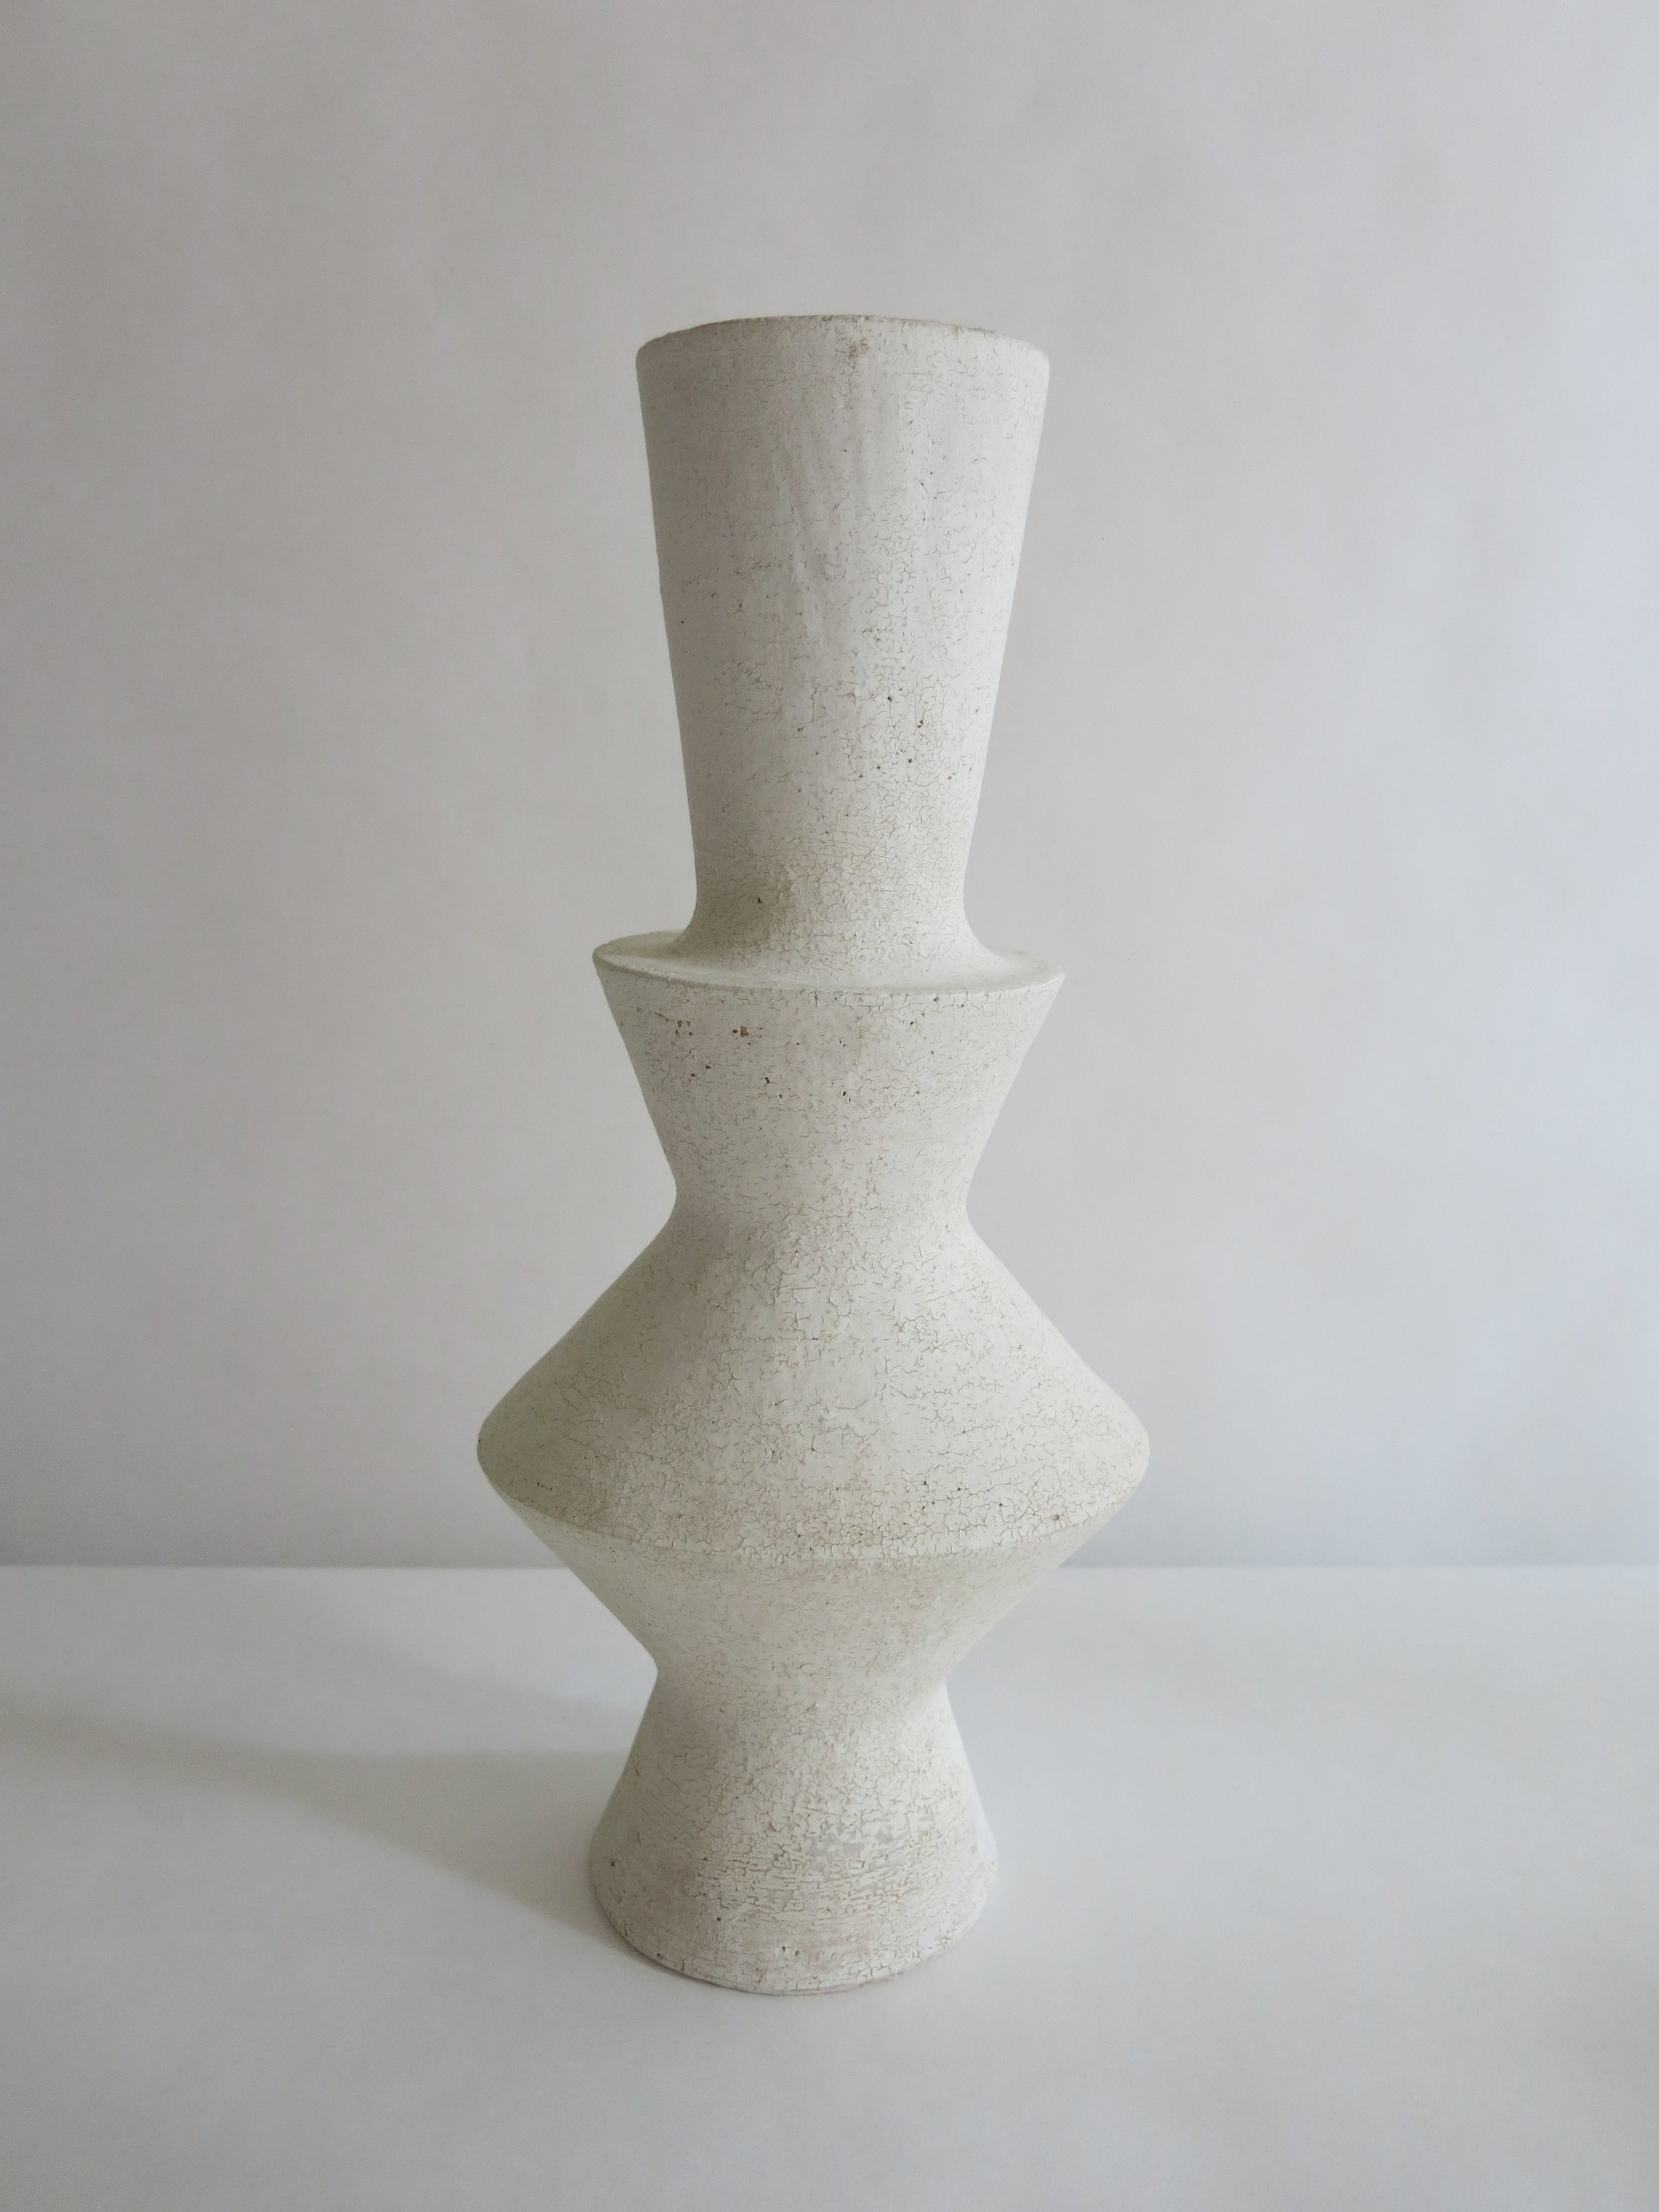 TRK VASE BY JOHN BORN